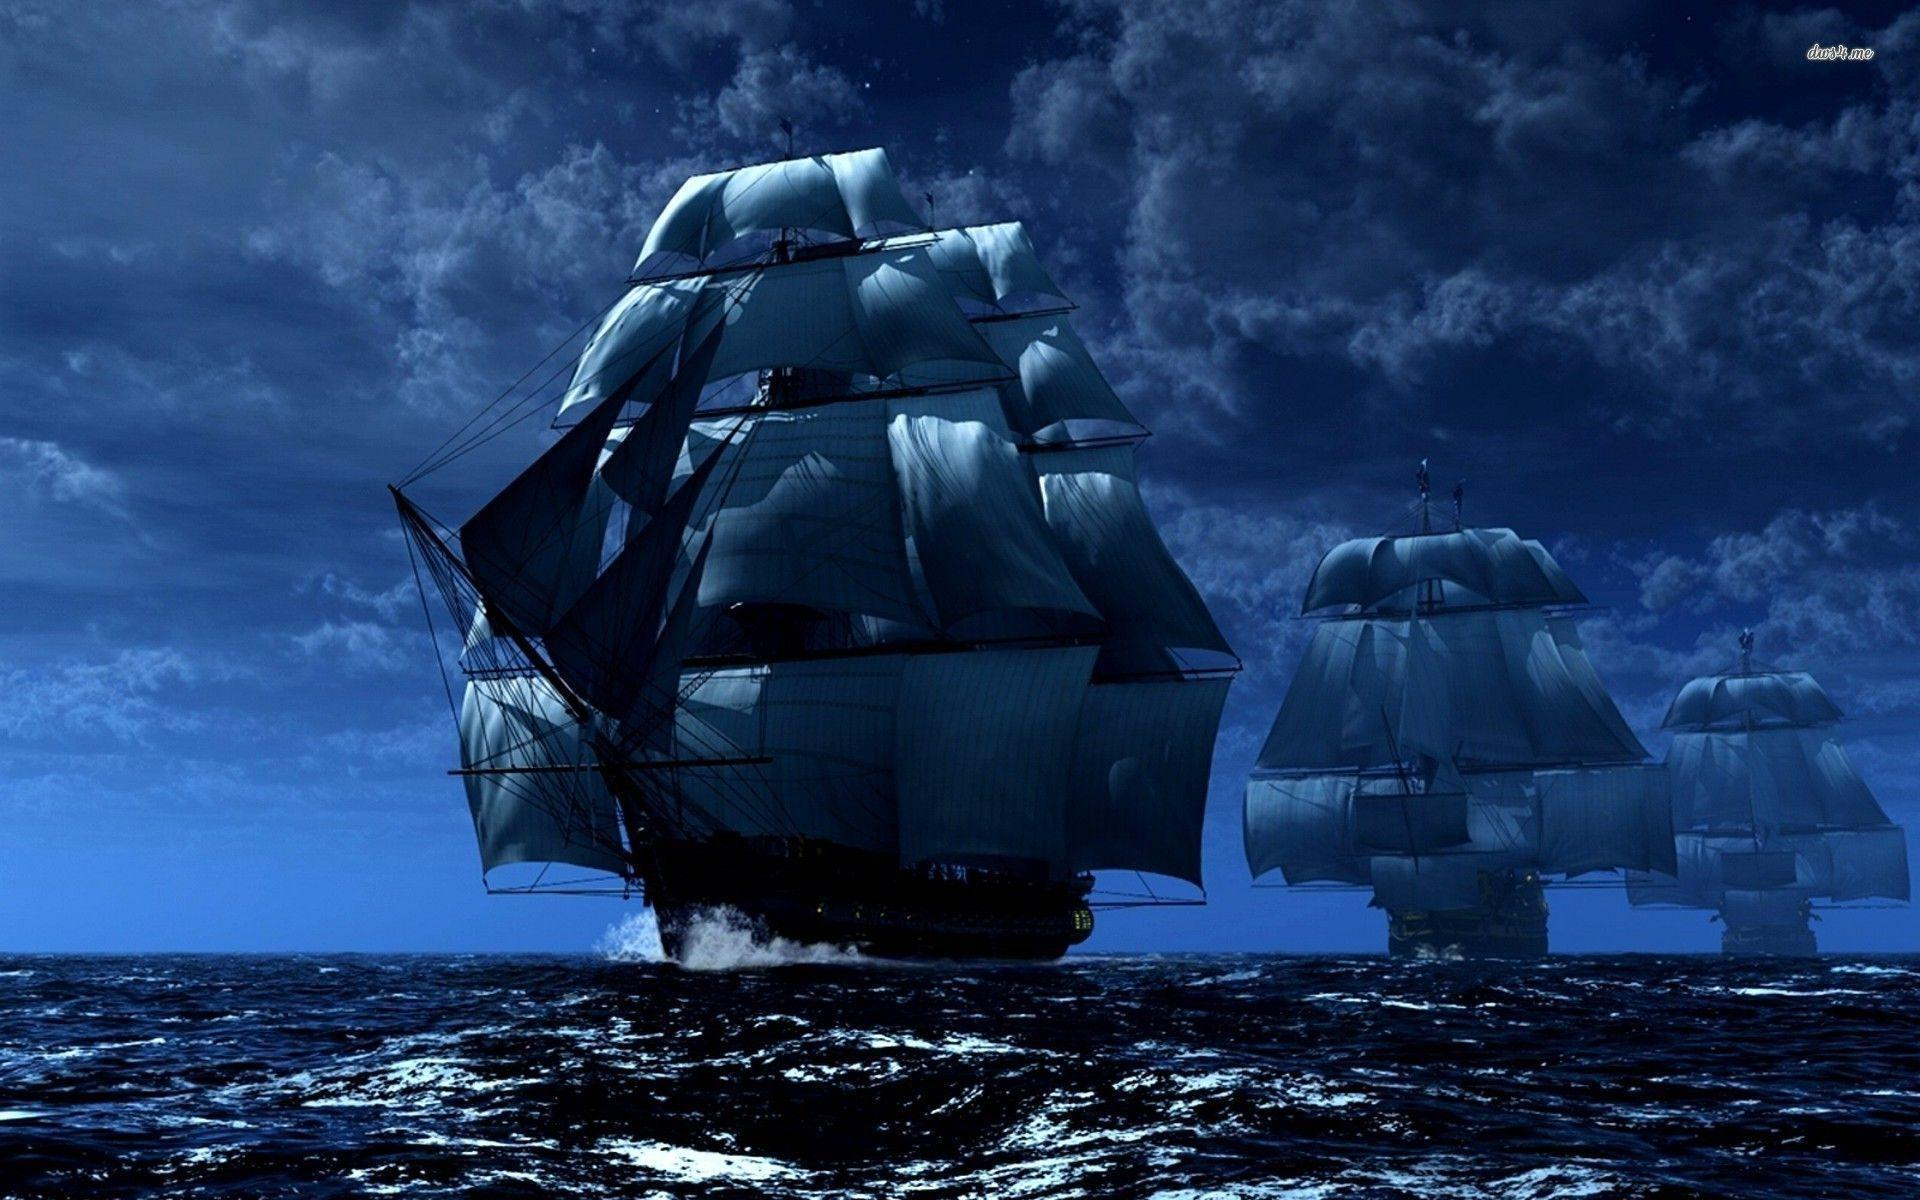 pirate ship computer wallpapers - photo #1